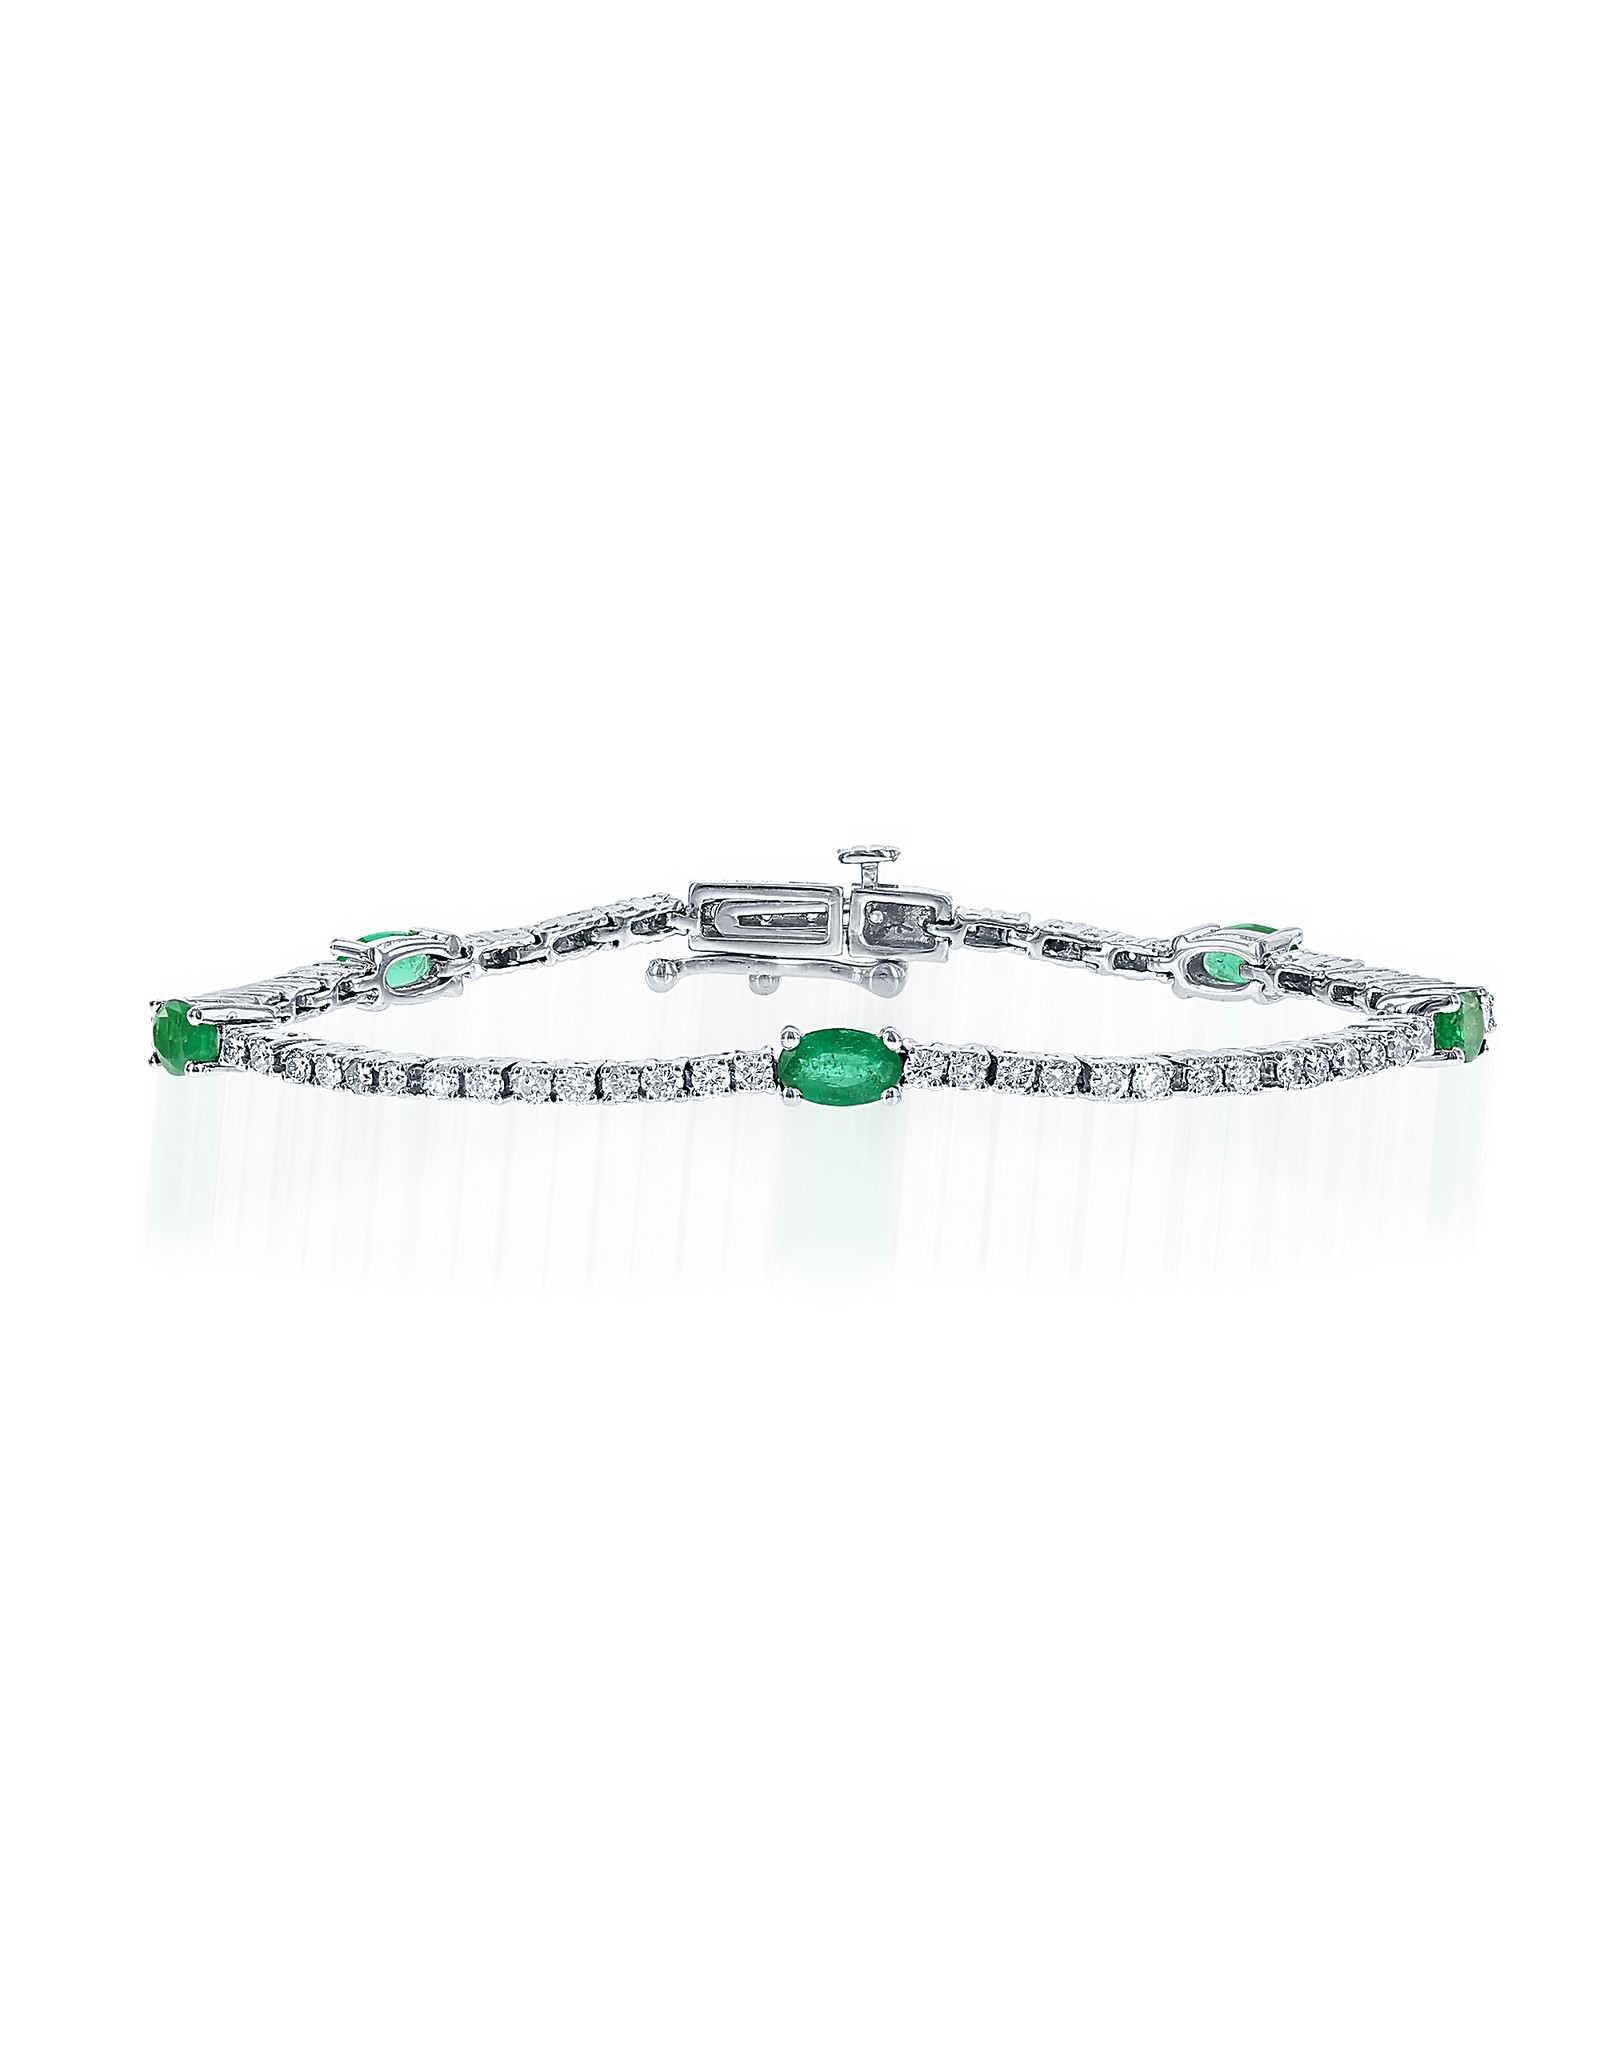 14K White Gold Emerald and Diamond Tennis Bracelet, E: 3.76ct, D: 0.40ct